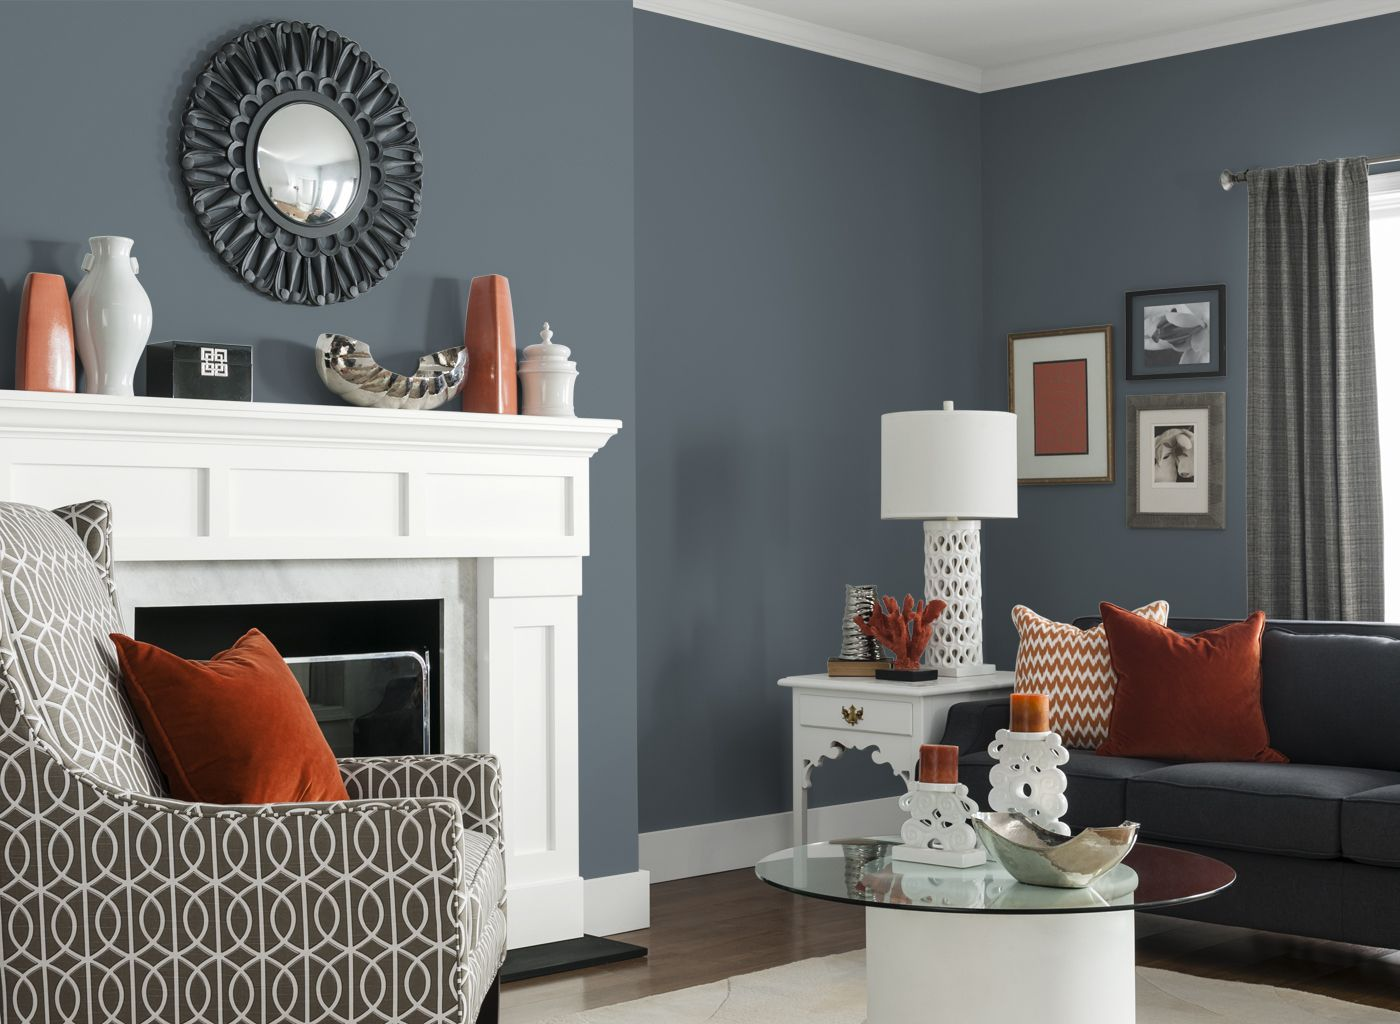 Living Room in Gliddens French Grey 70BG 19071 Color  : cc836e558a9619733dea87271d642b51 from www.pinterest.com size 1400 x 1024 jpeg 727kB